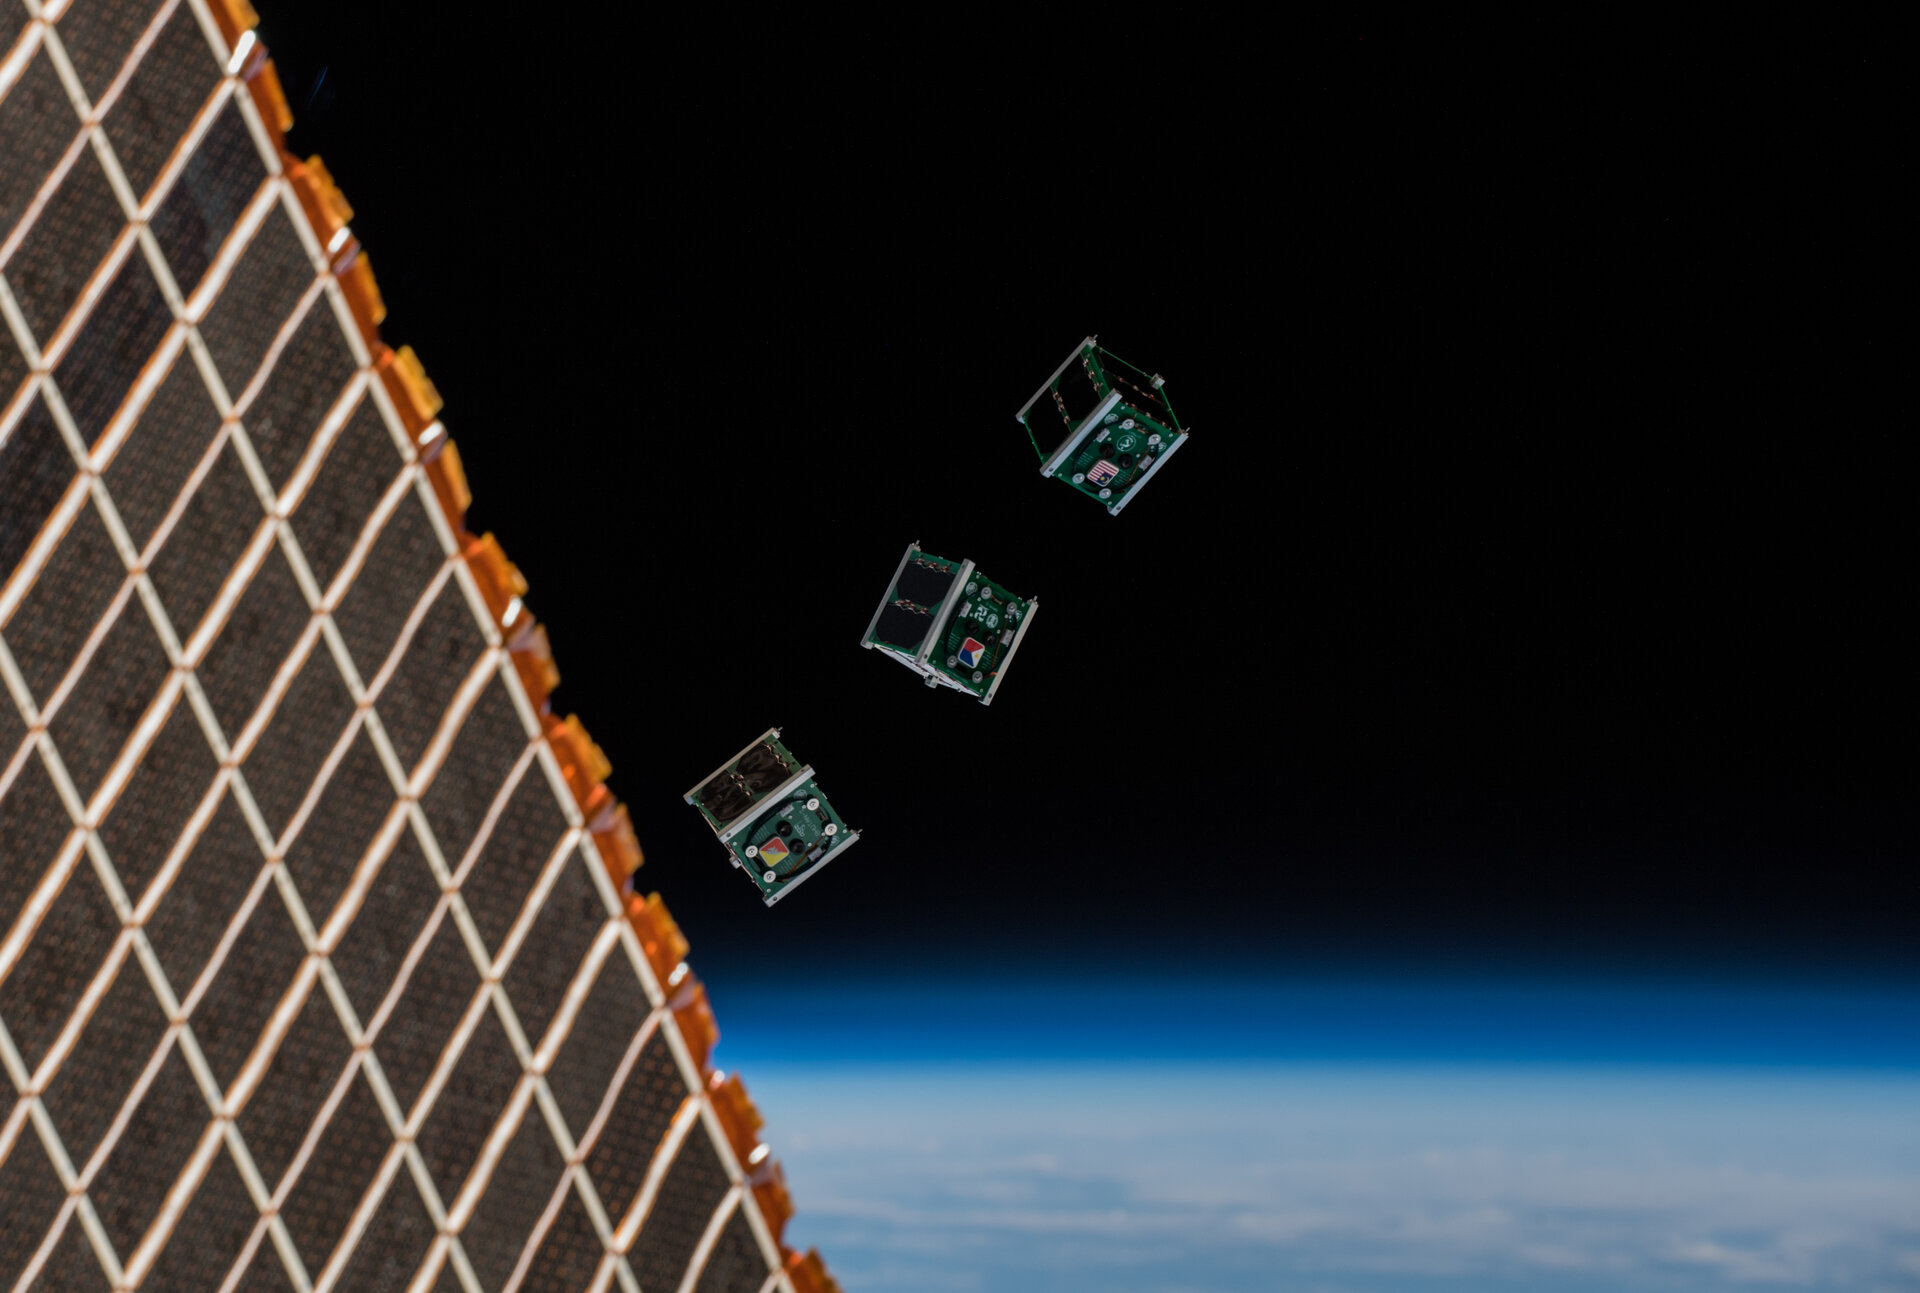 International CubeSats launched from the Space Station